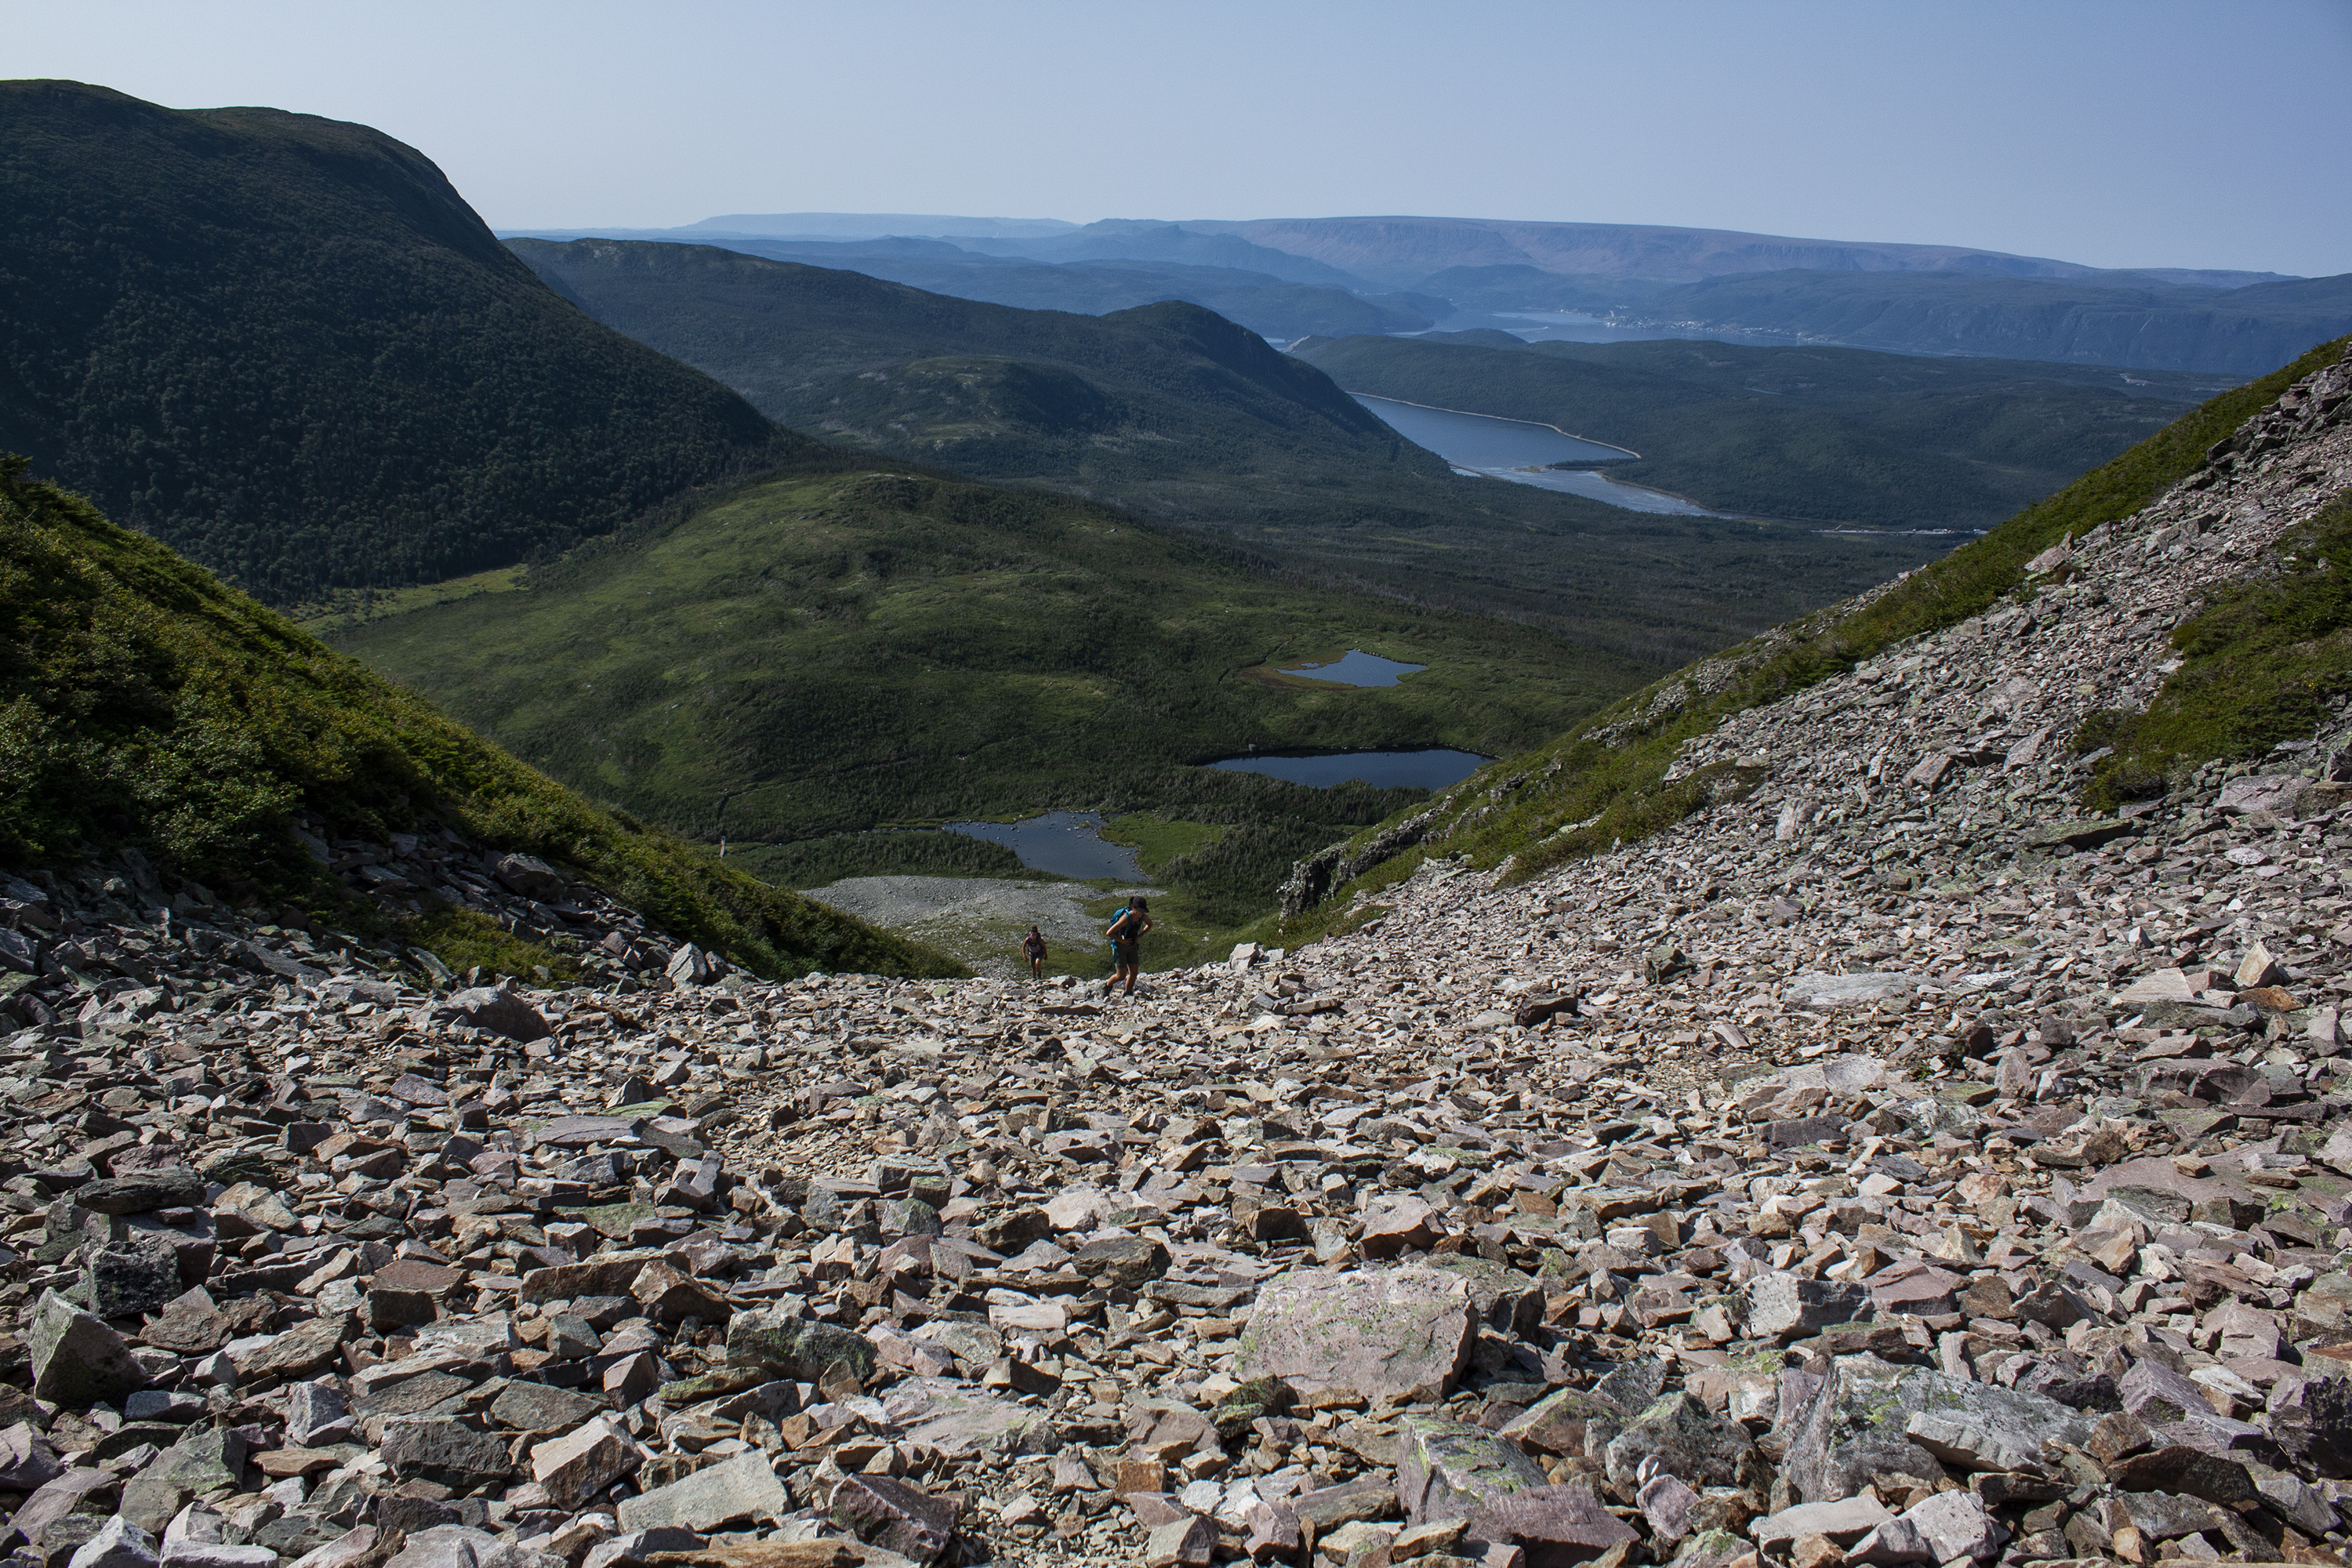 The view from Gros Morne Mountain's gully, pictured on Aug. 31, 2017. (Steve Silva)